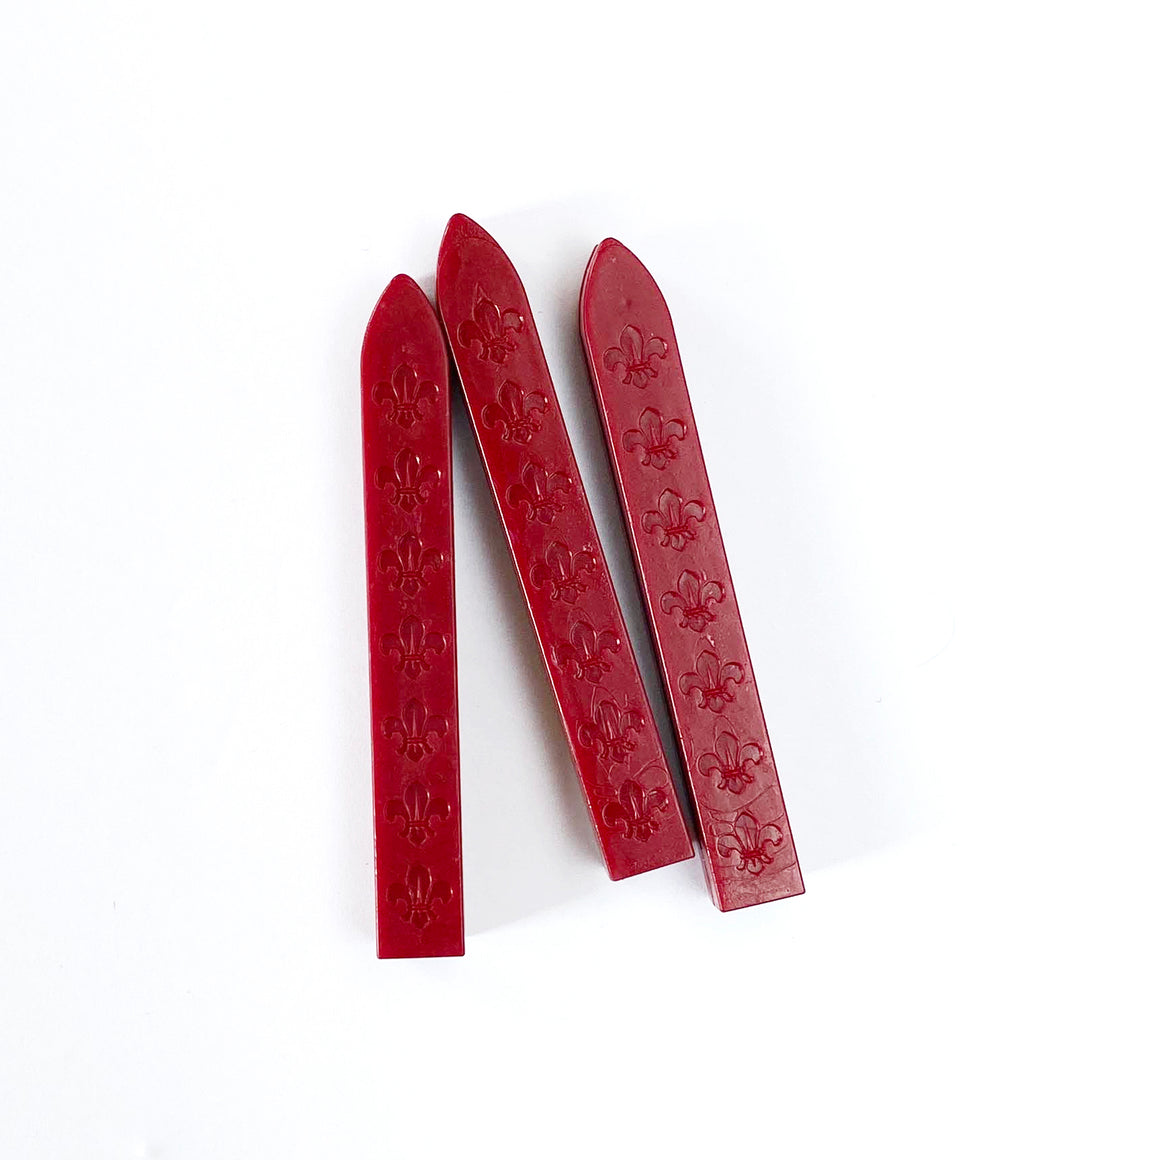 Wax Seal Sticks - Non-Wicked - Candy Apple